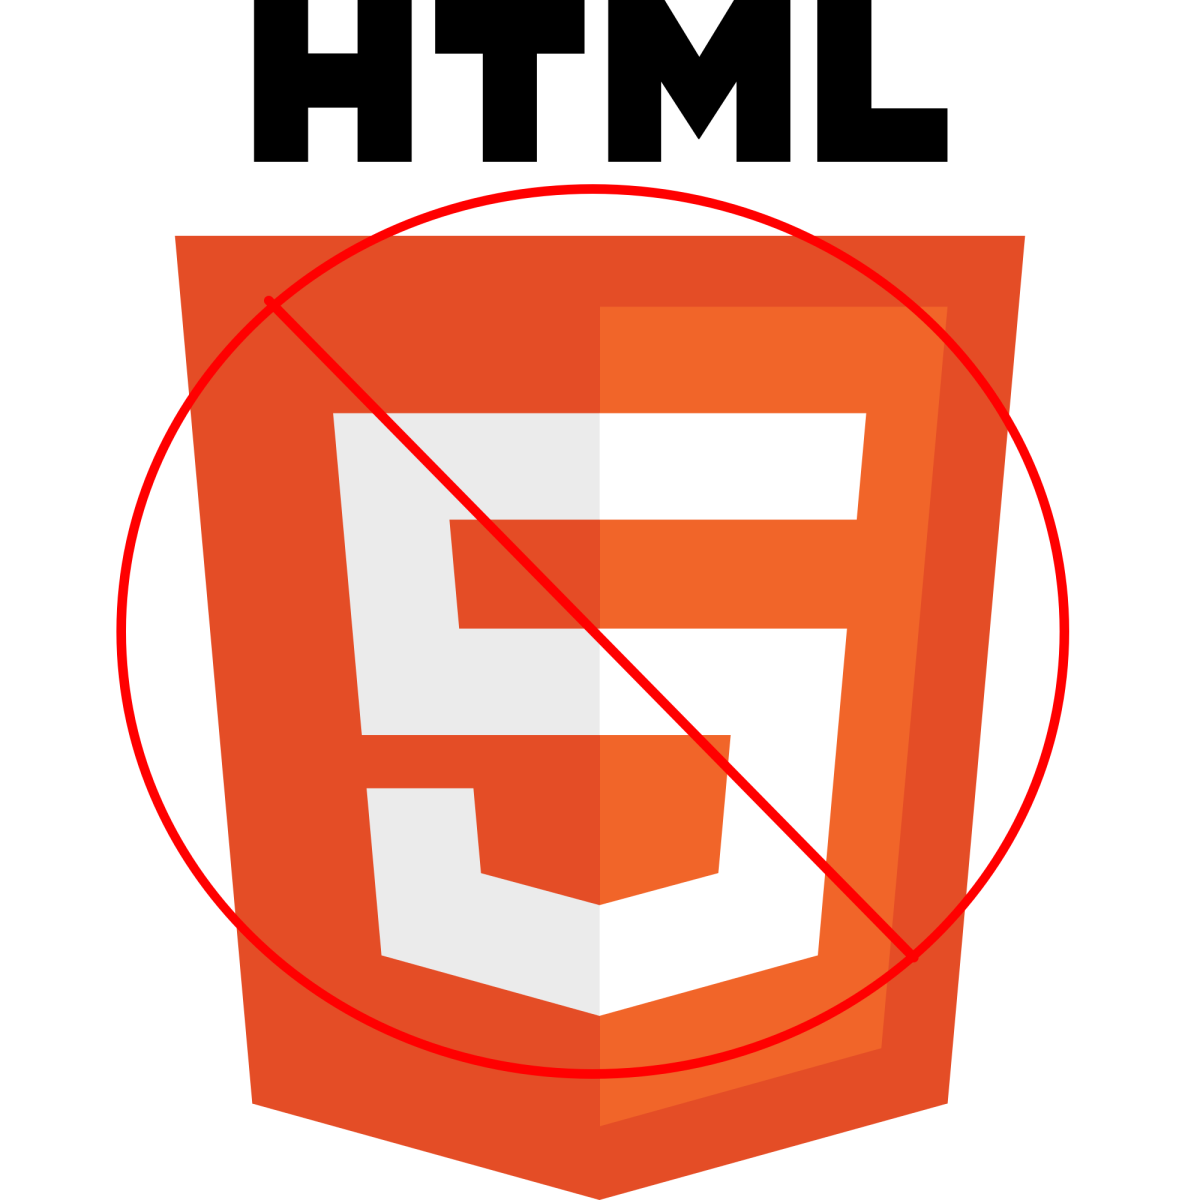 Yet another major cross-platform project shuns HTML5